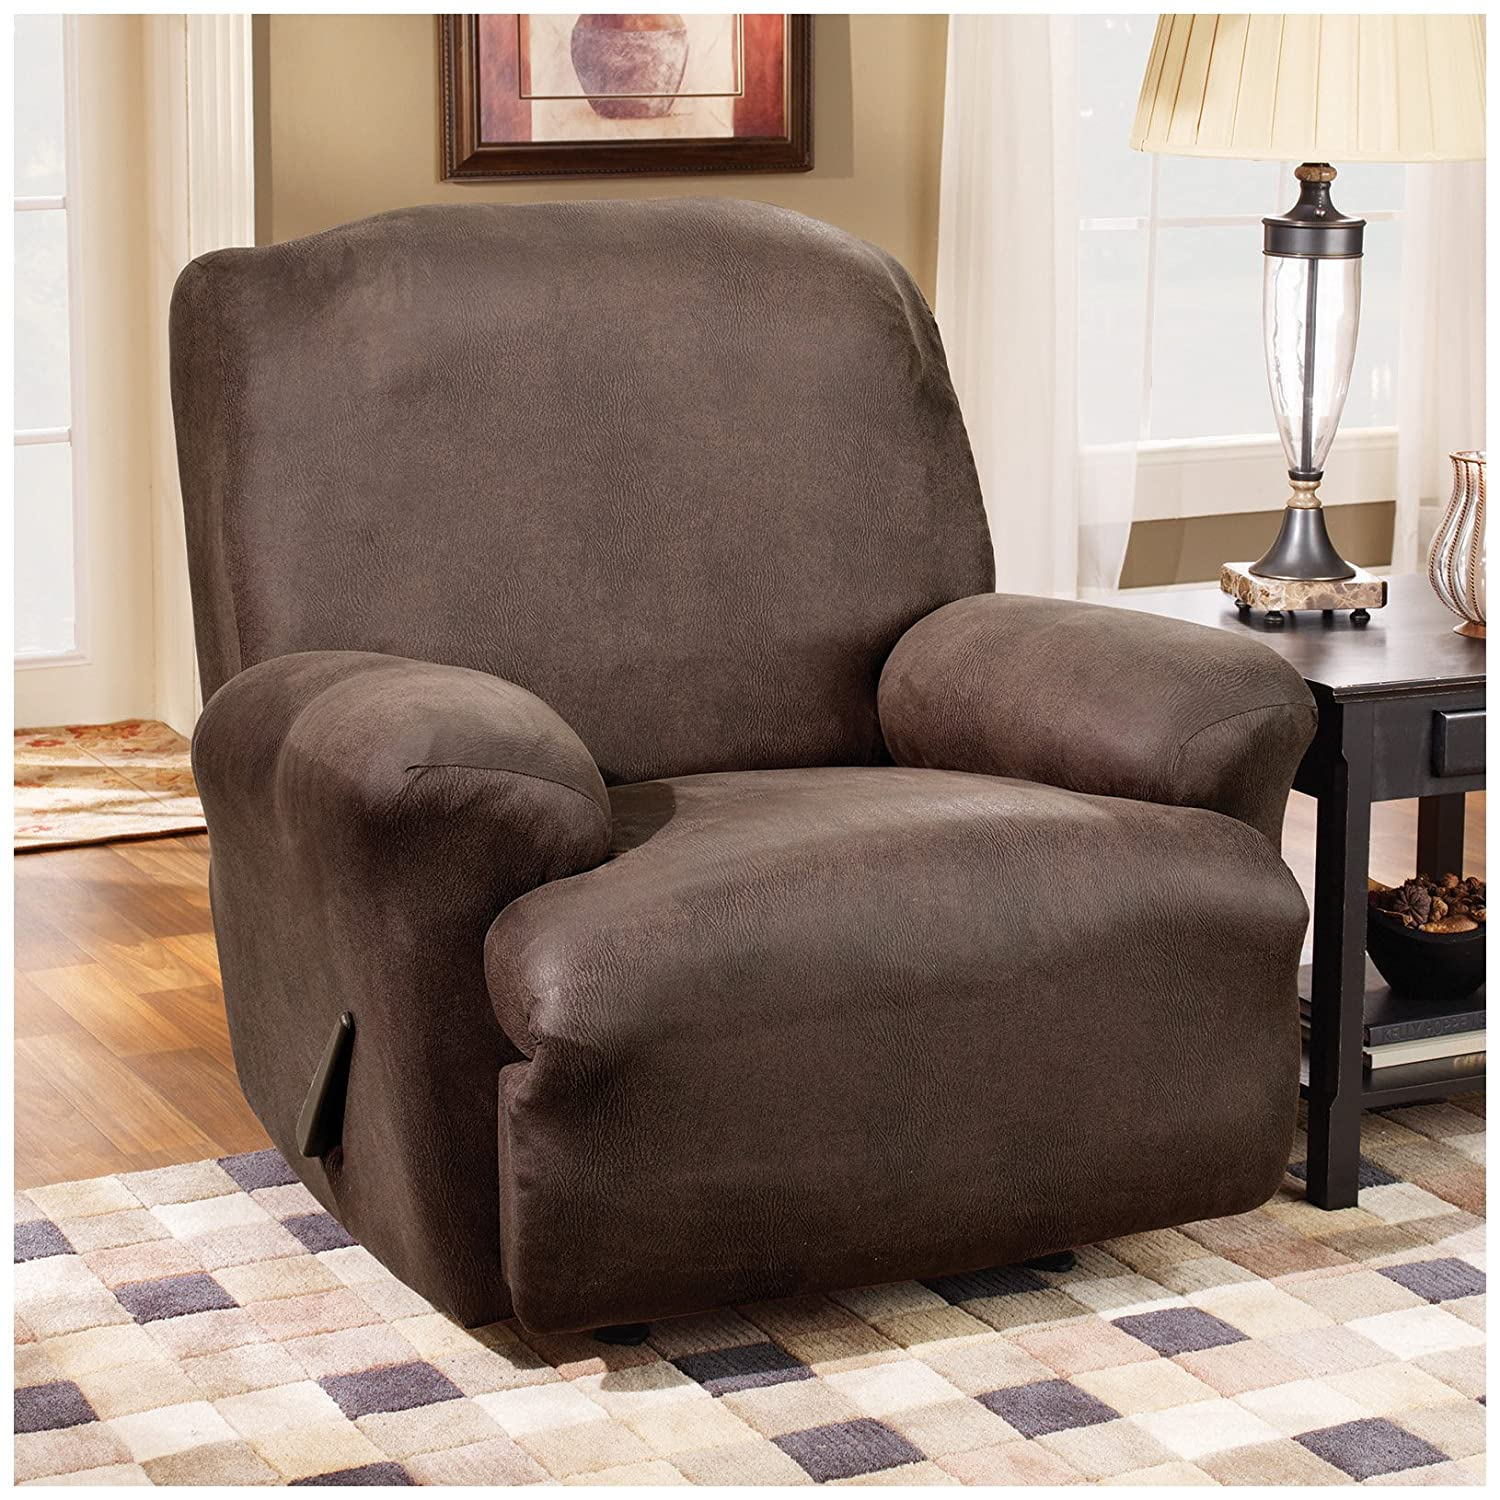 Amazon Sure Fit Stretch Leather 1 Piece Recliner Slipcover